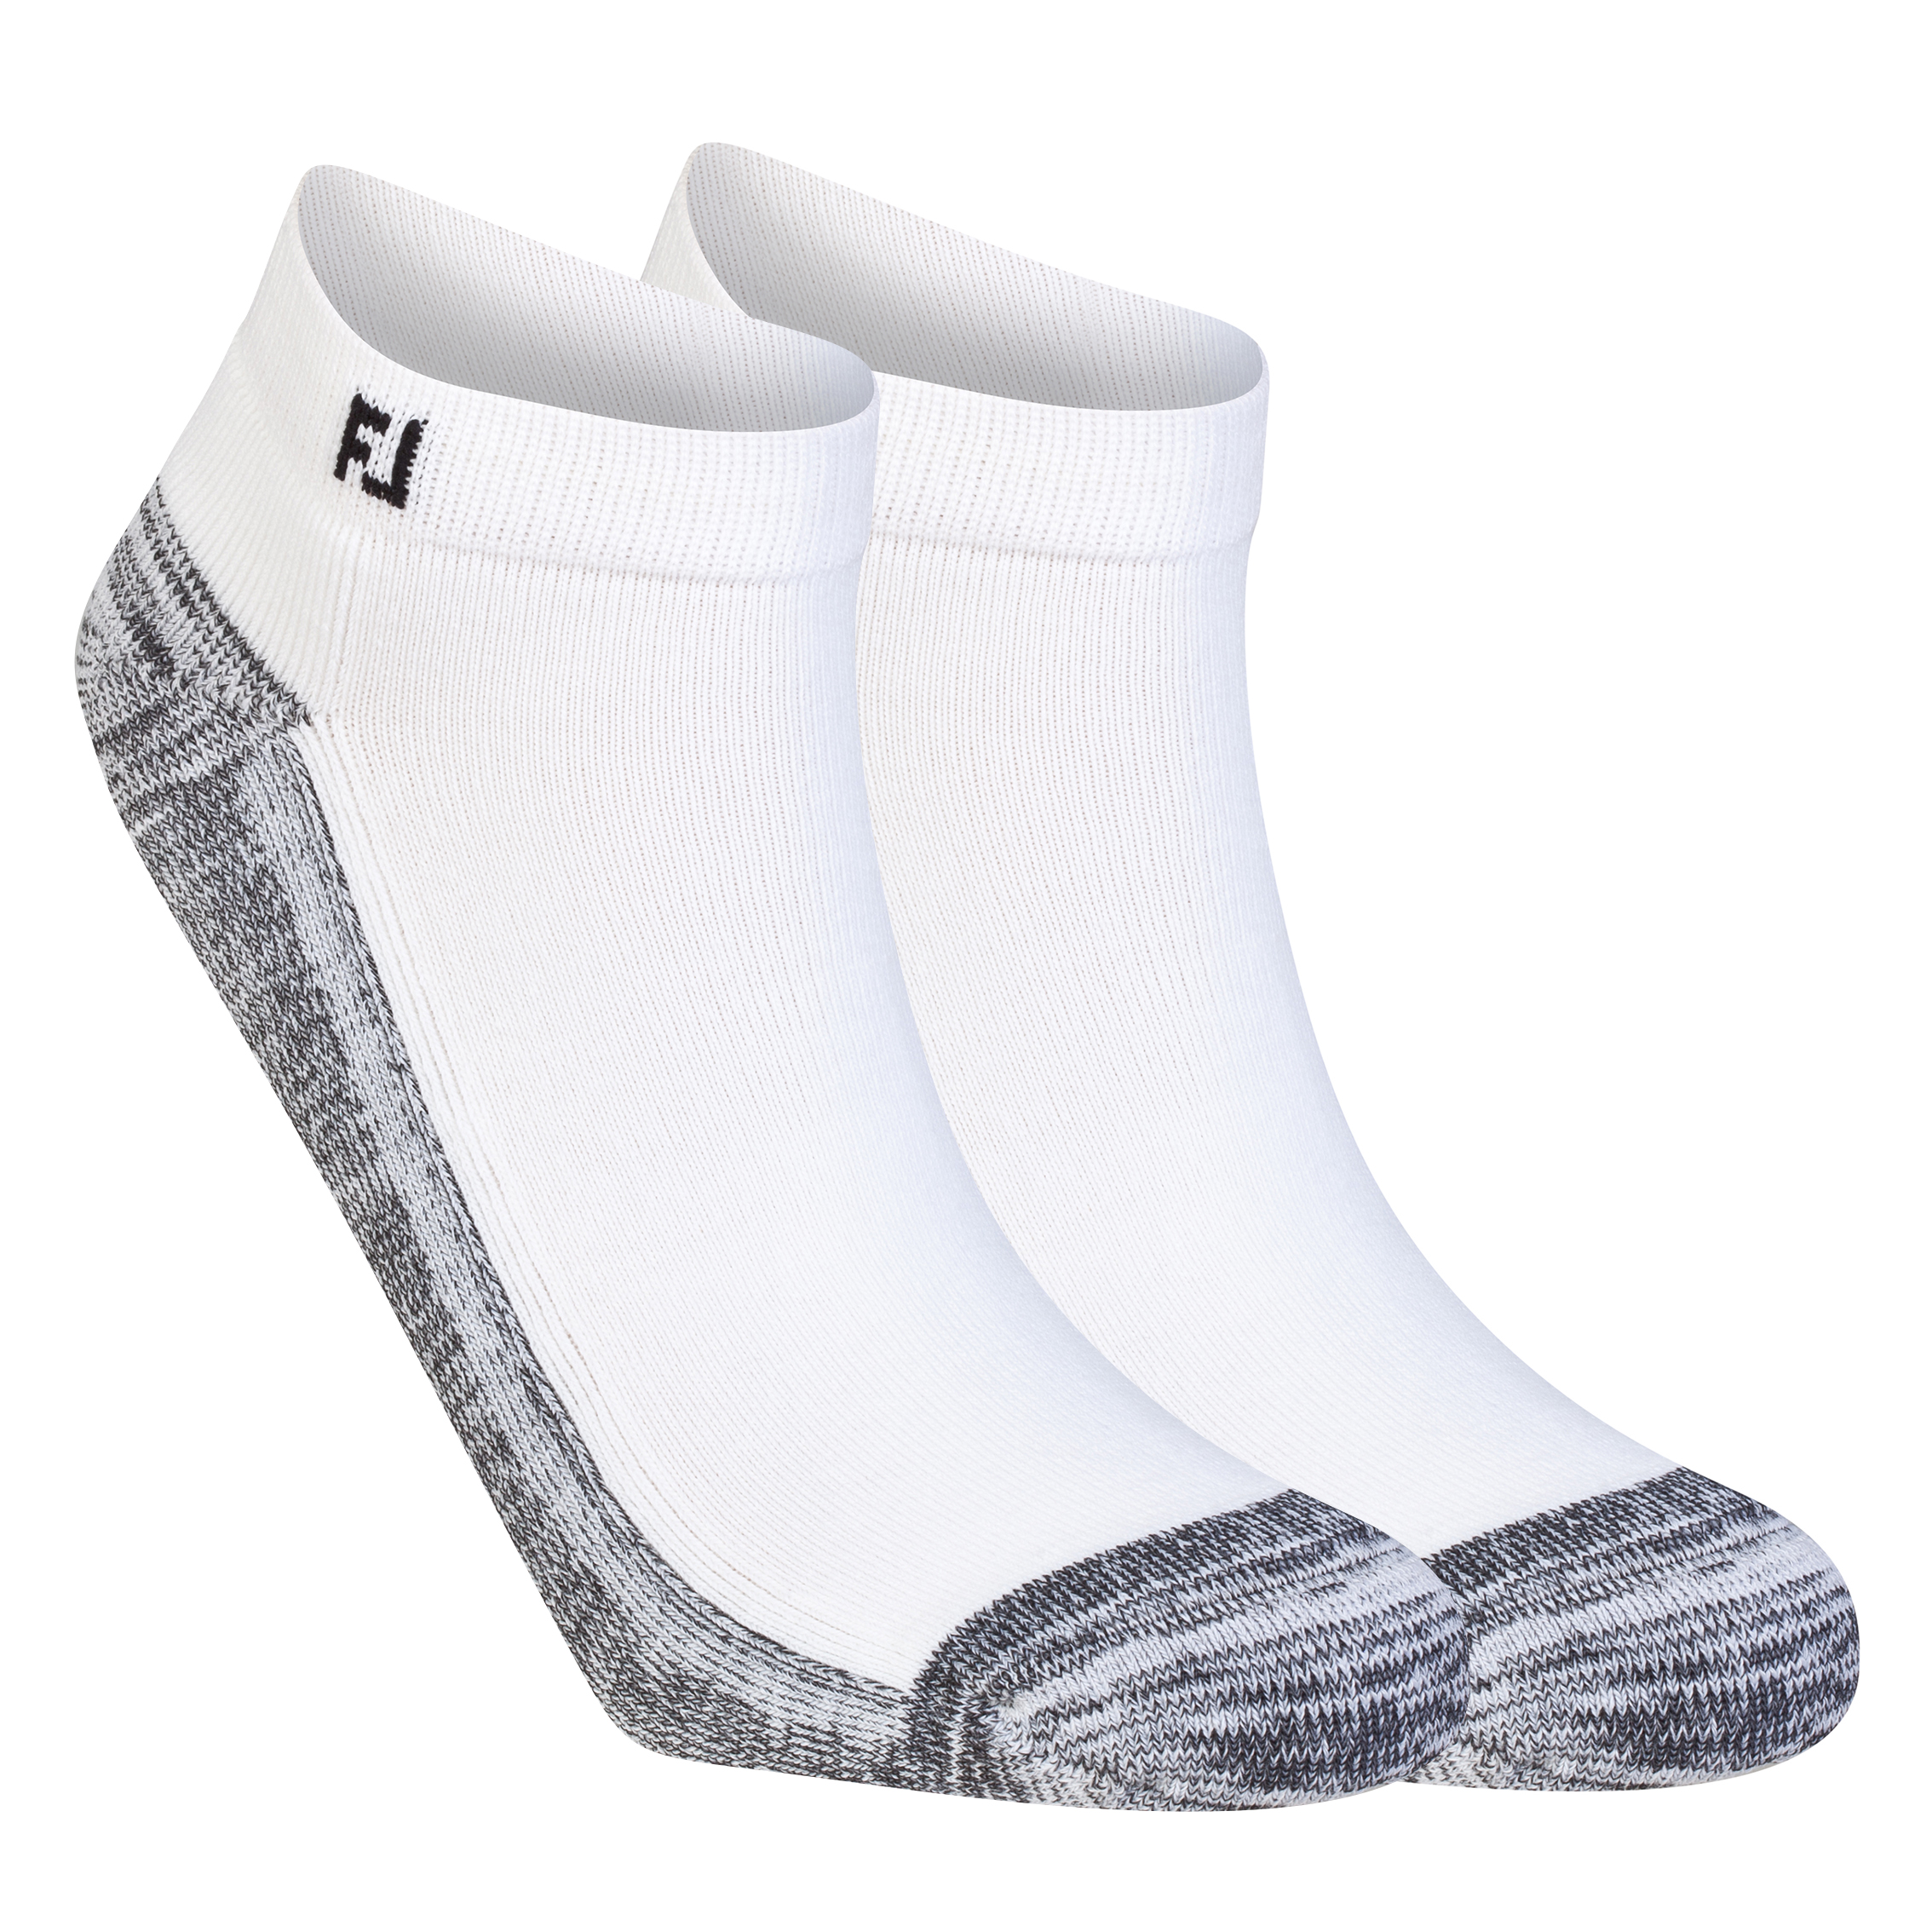 The 2014 Ryder Cup Footjoy ProDry Sport Socks - White